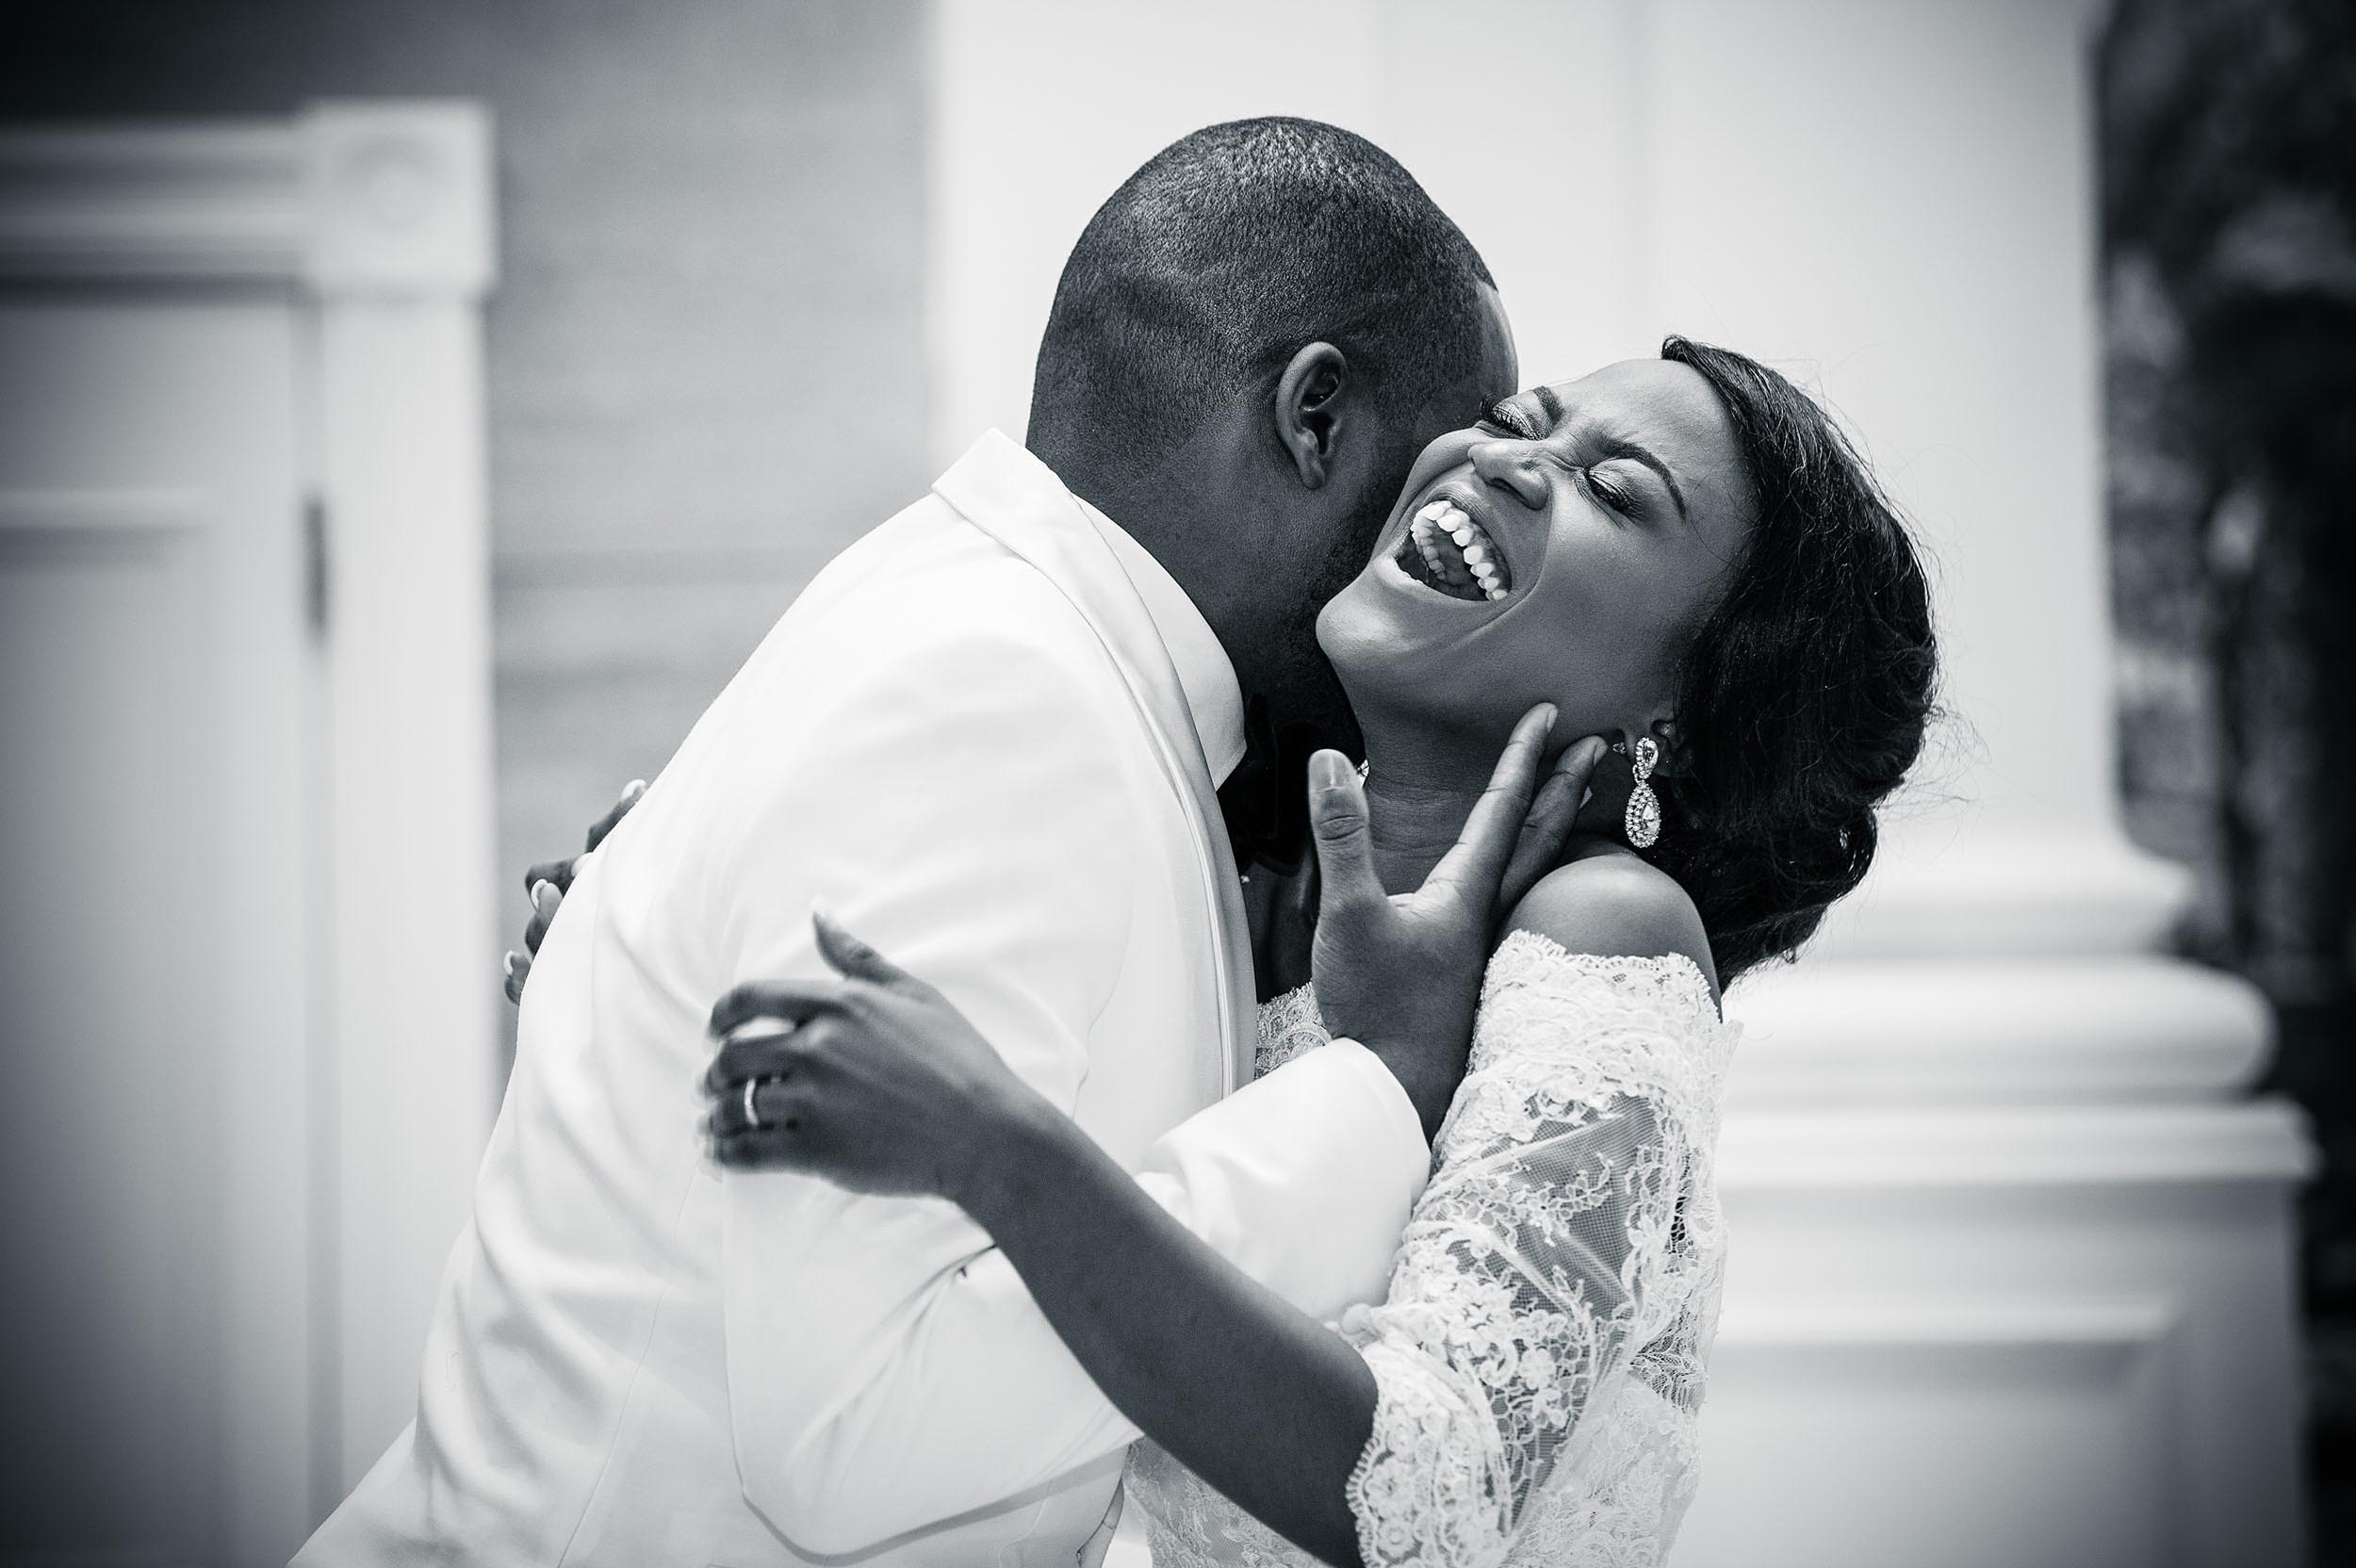 bride-groom-embrace-joy-love-uckg-kilburn-london-wedding-photographer